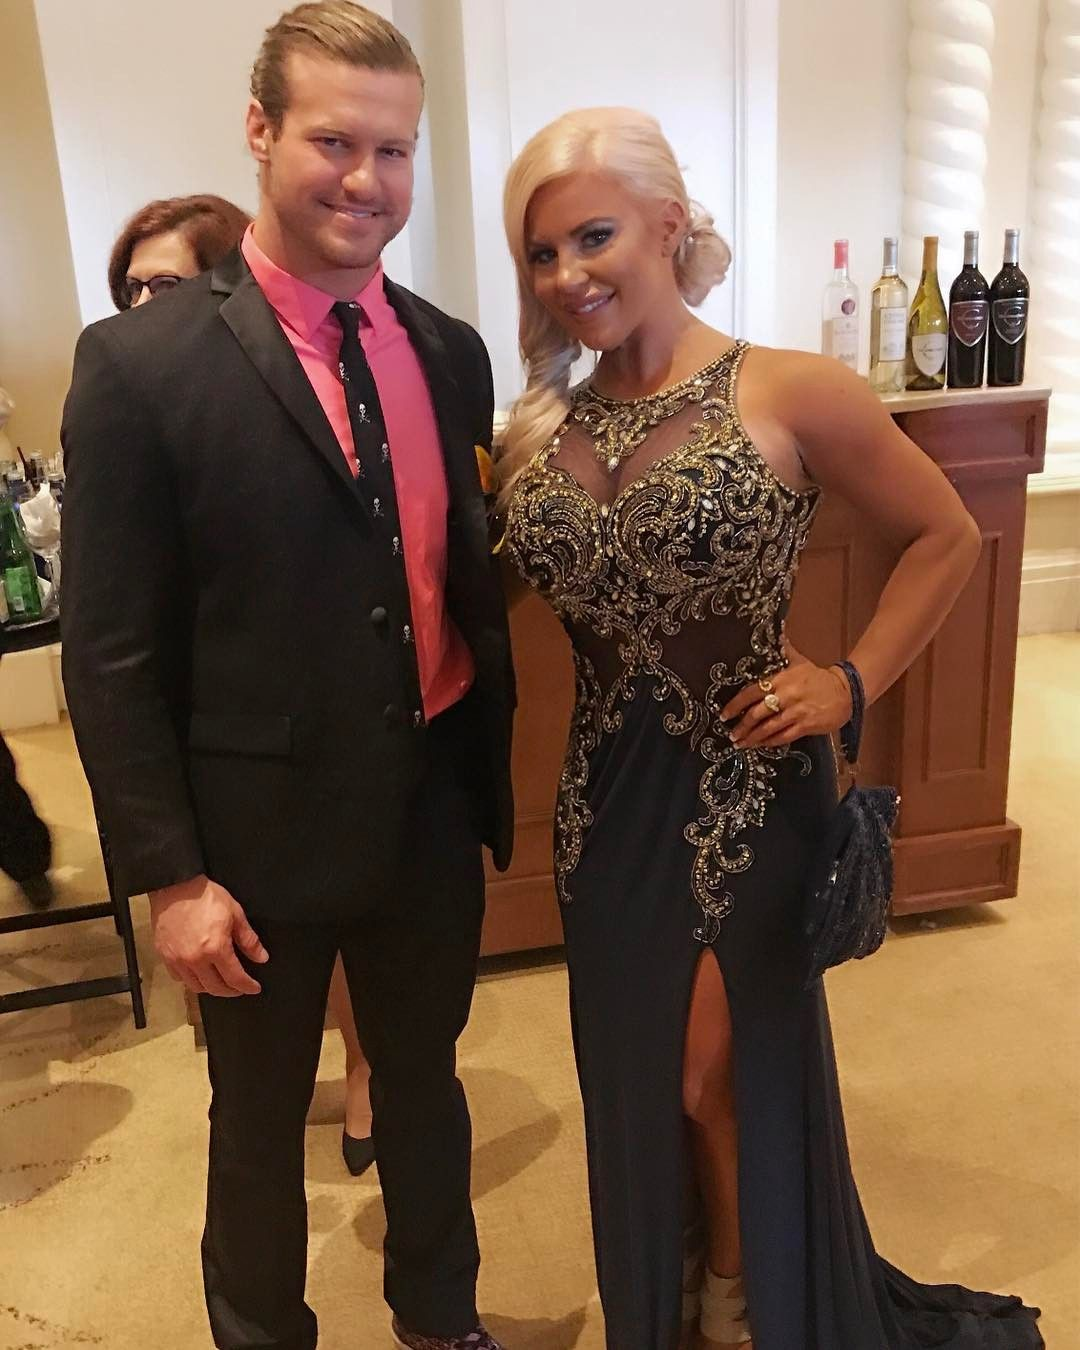 Dolph Ziggler And Dana Brooke Hookup